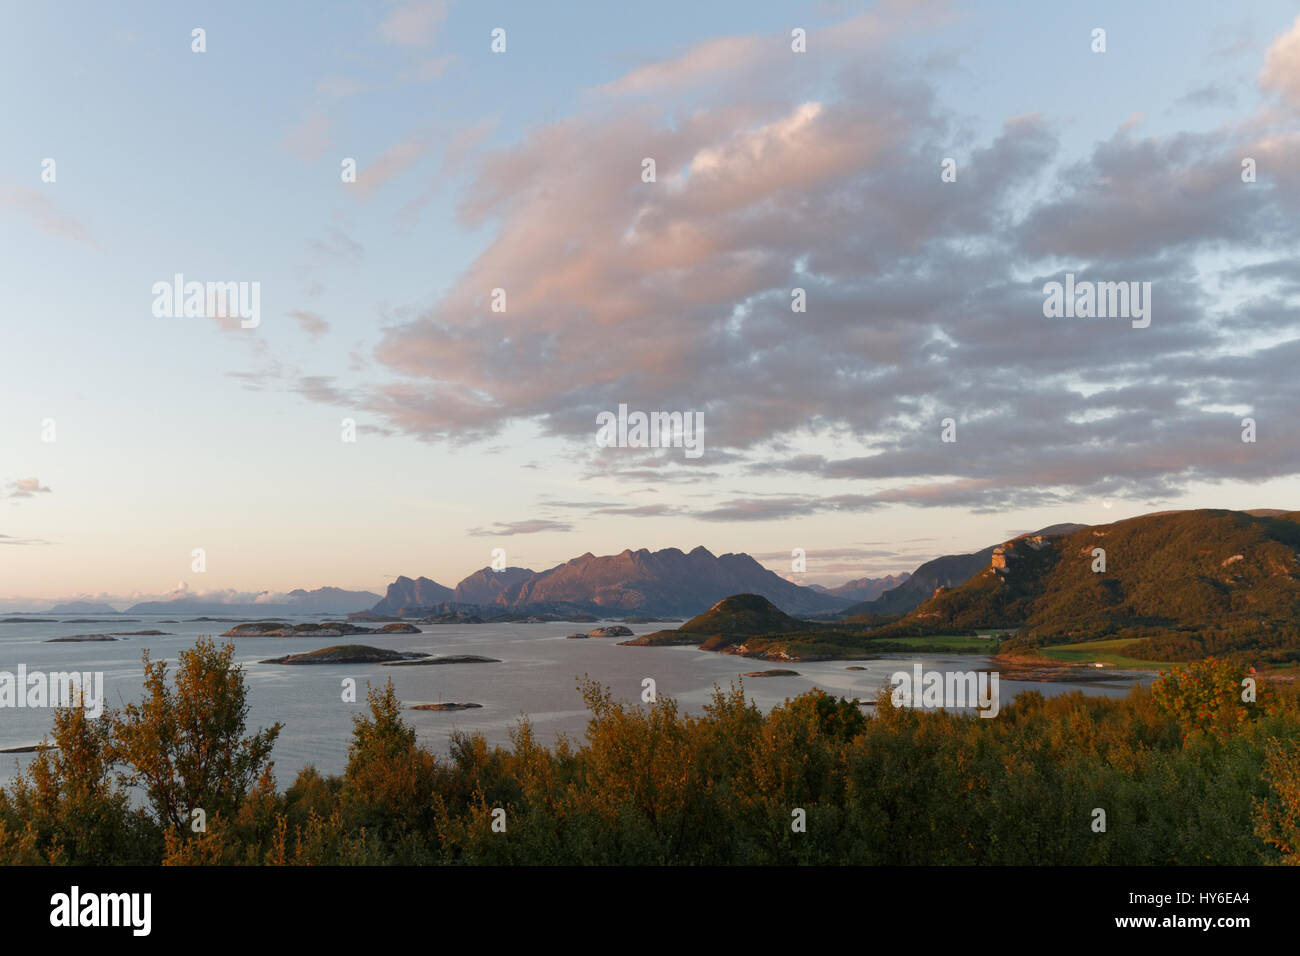 Late summer coastal view near Bodø, Norway - Stock Image